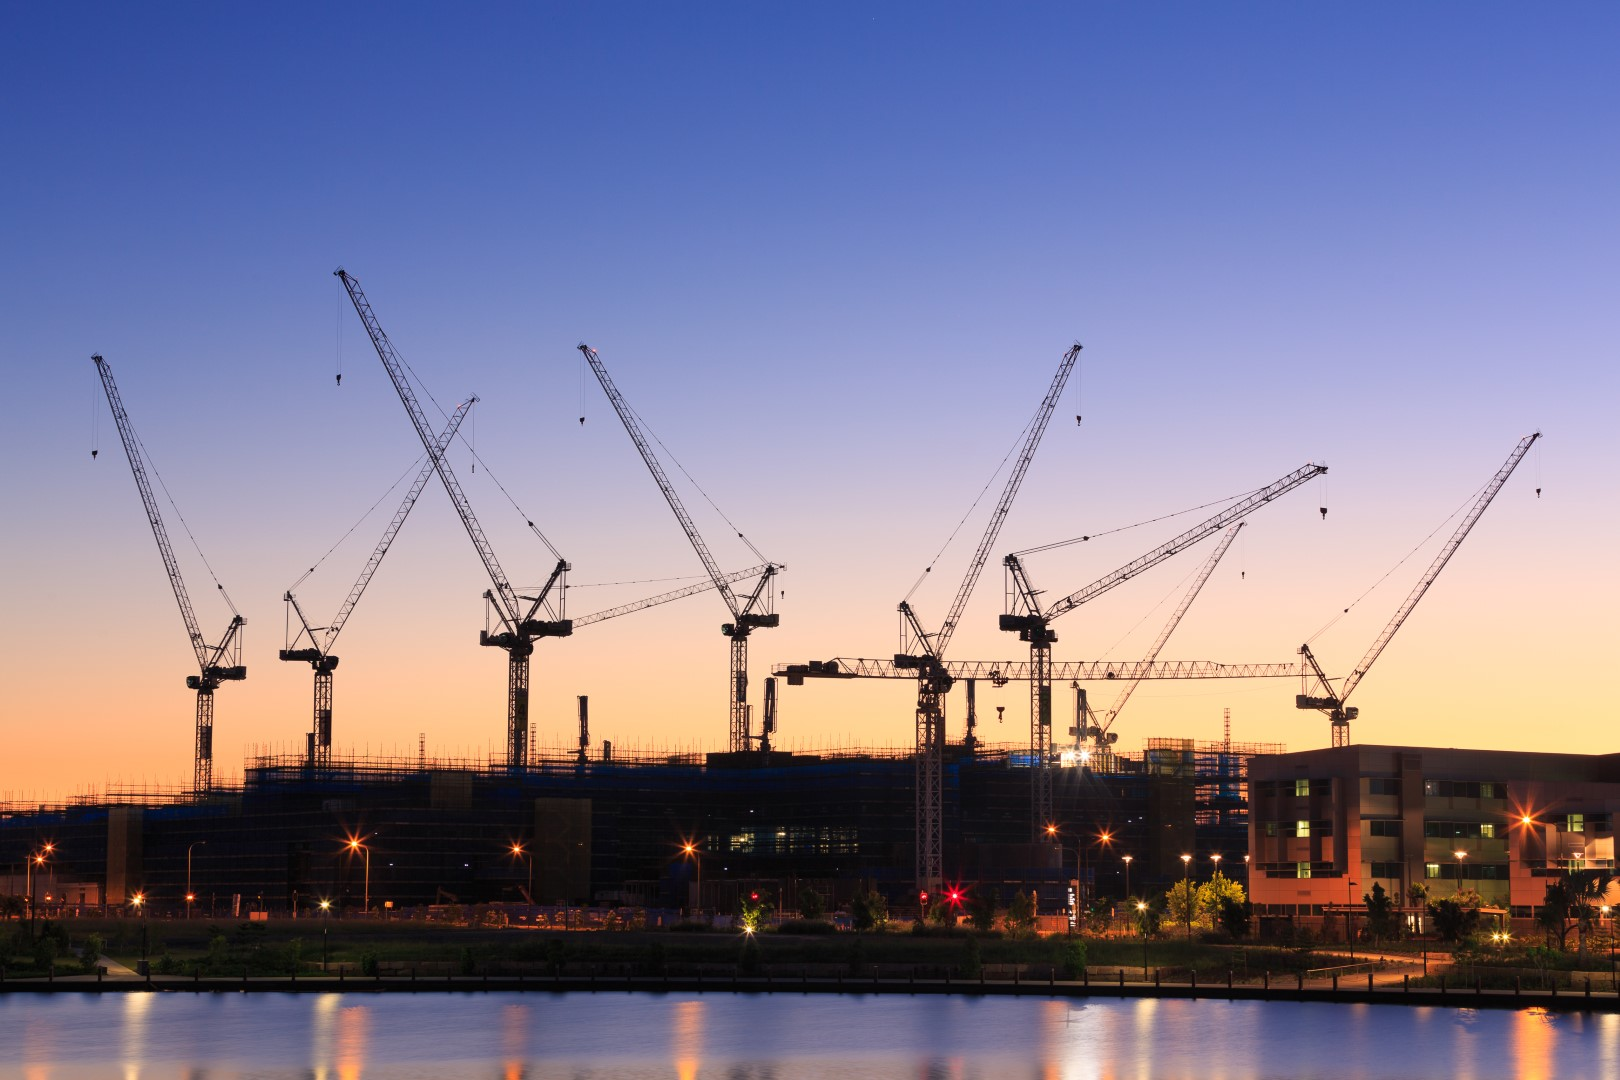 Crane numbers reflect changing housing demand